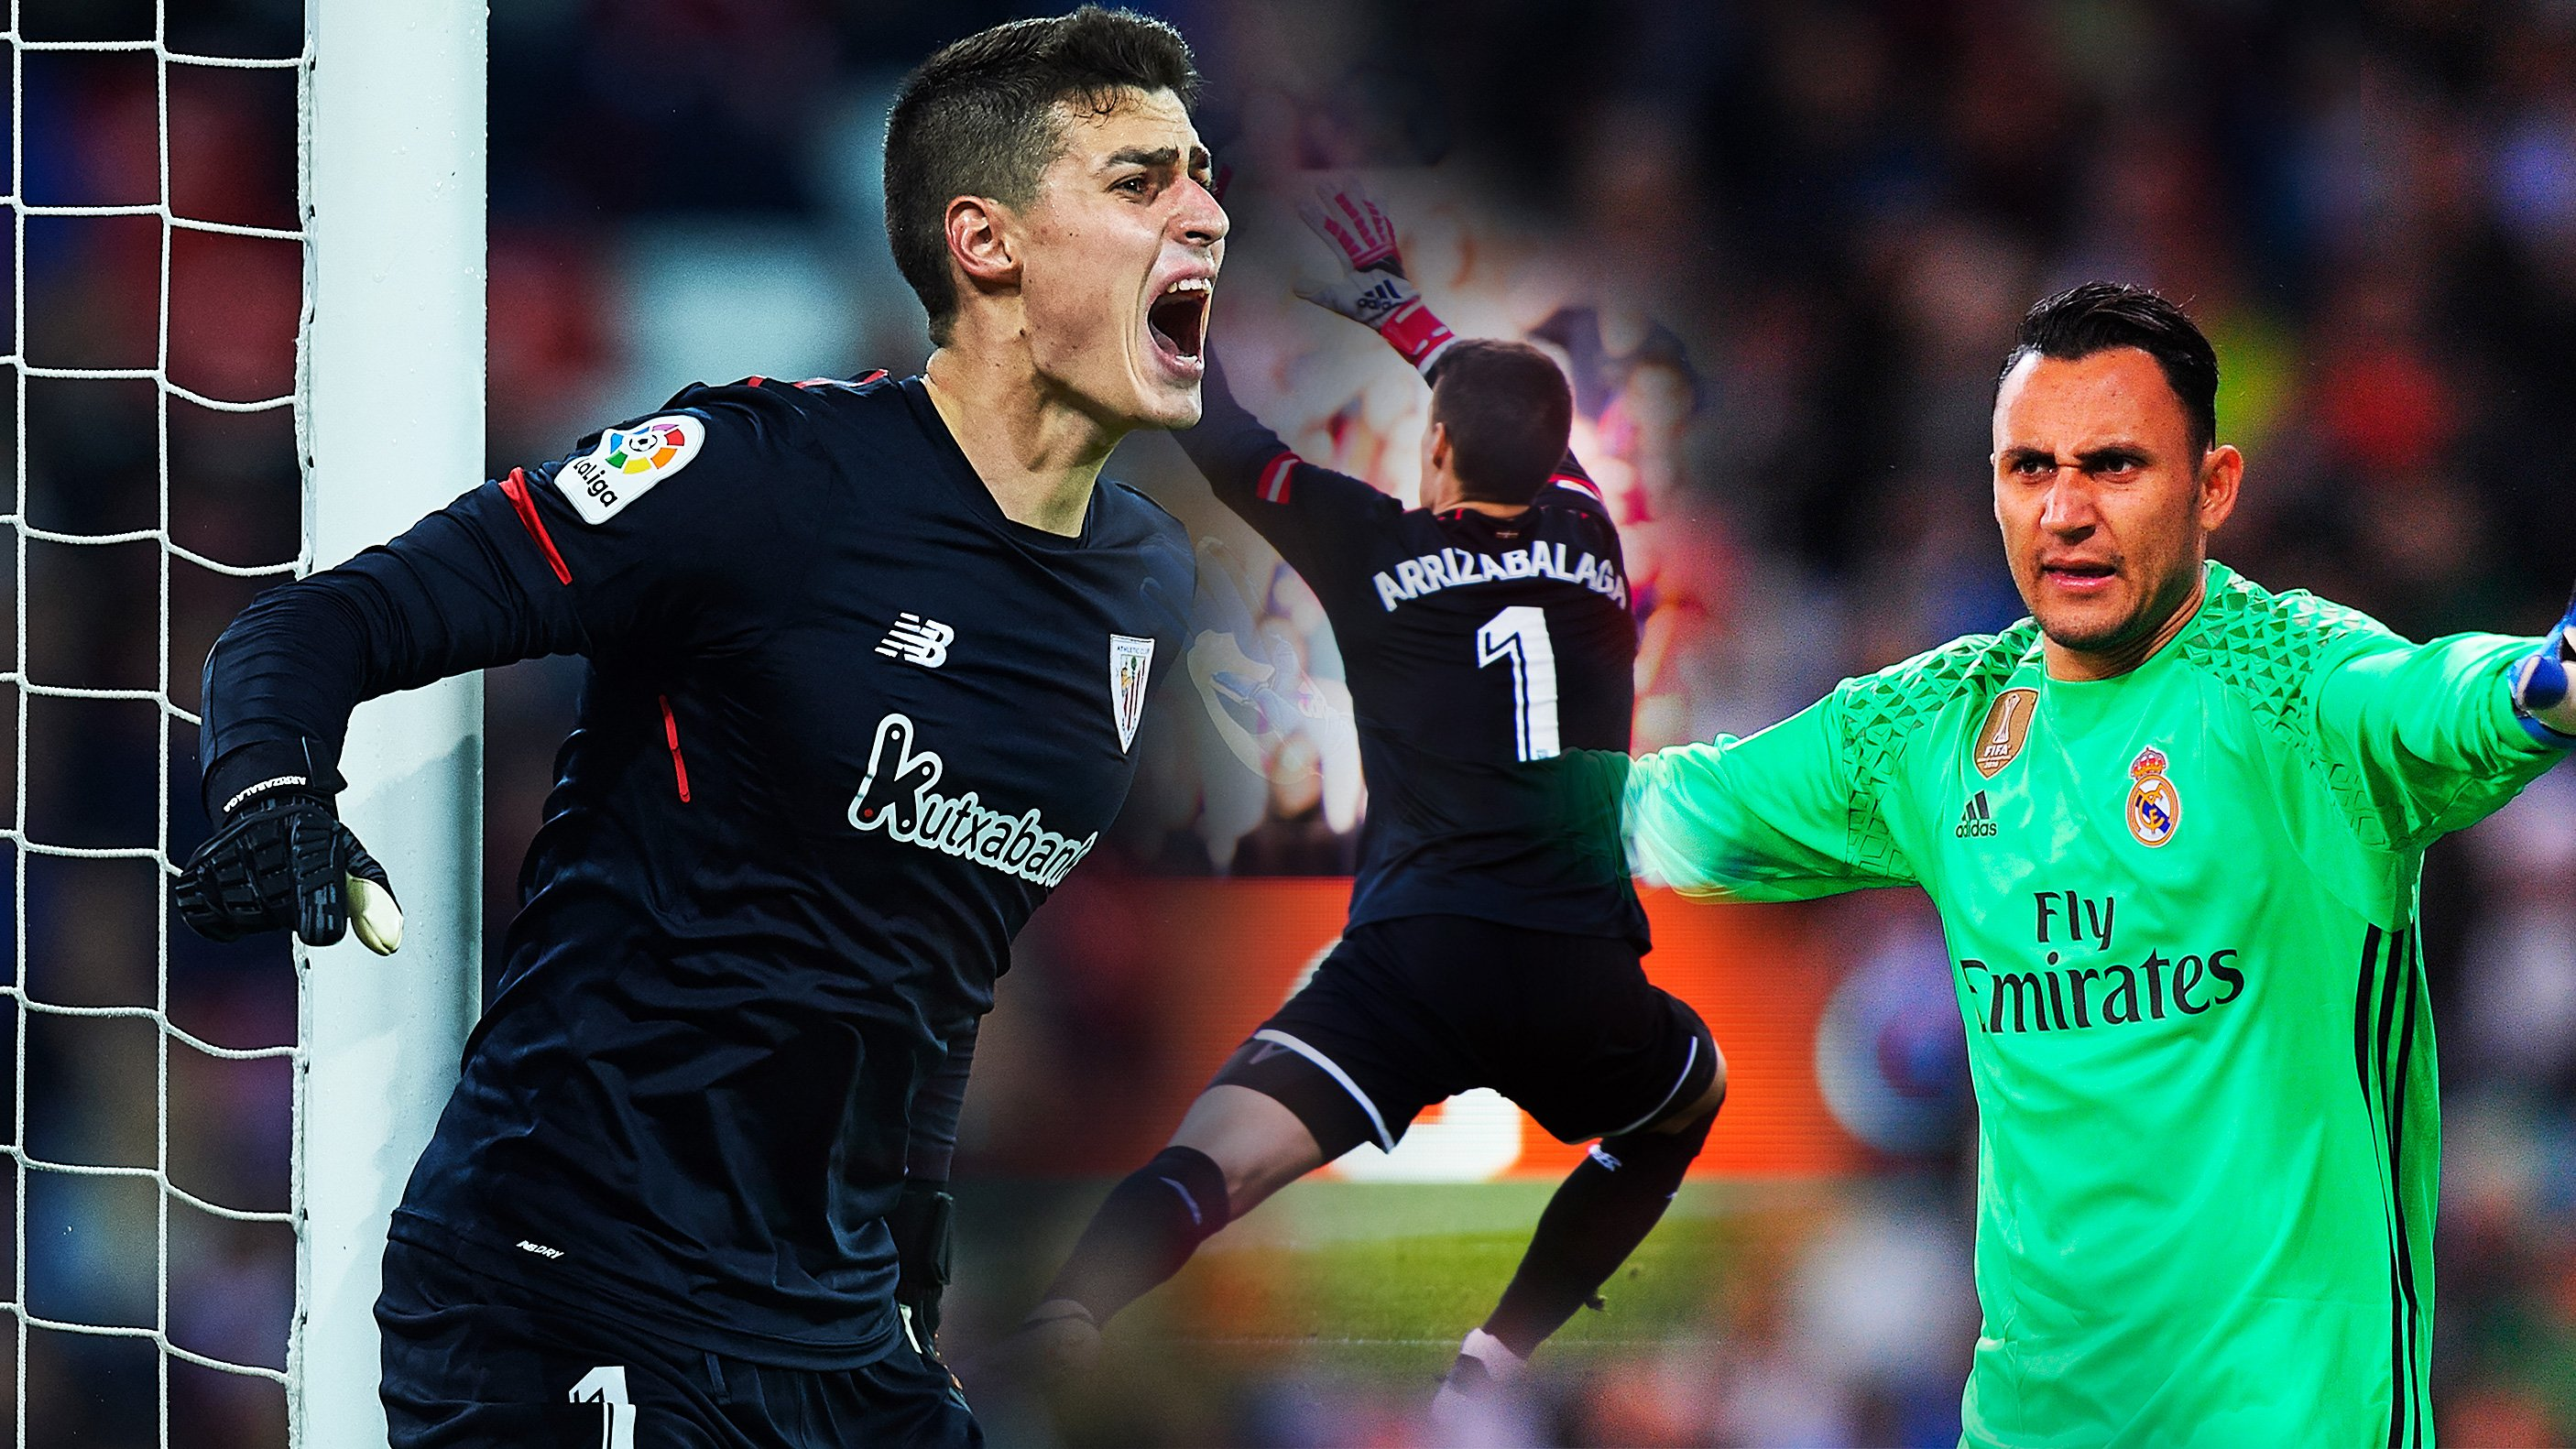 Real madrid athletic de bilbao kepa por la otra puerta for Puerta 44 bernabeu